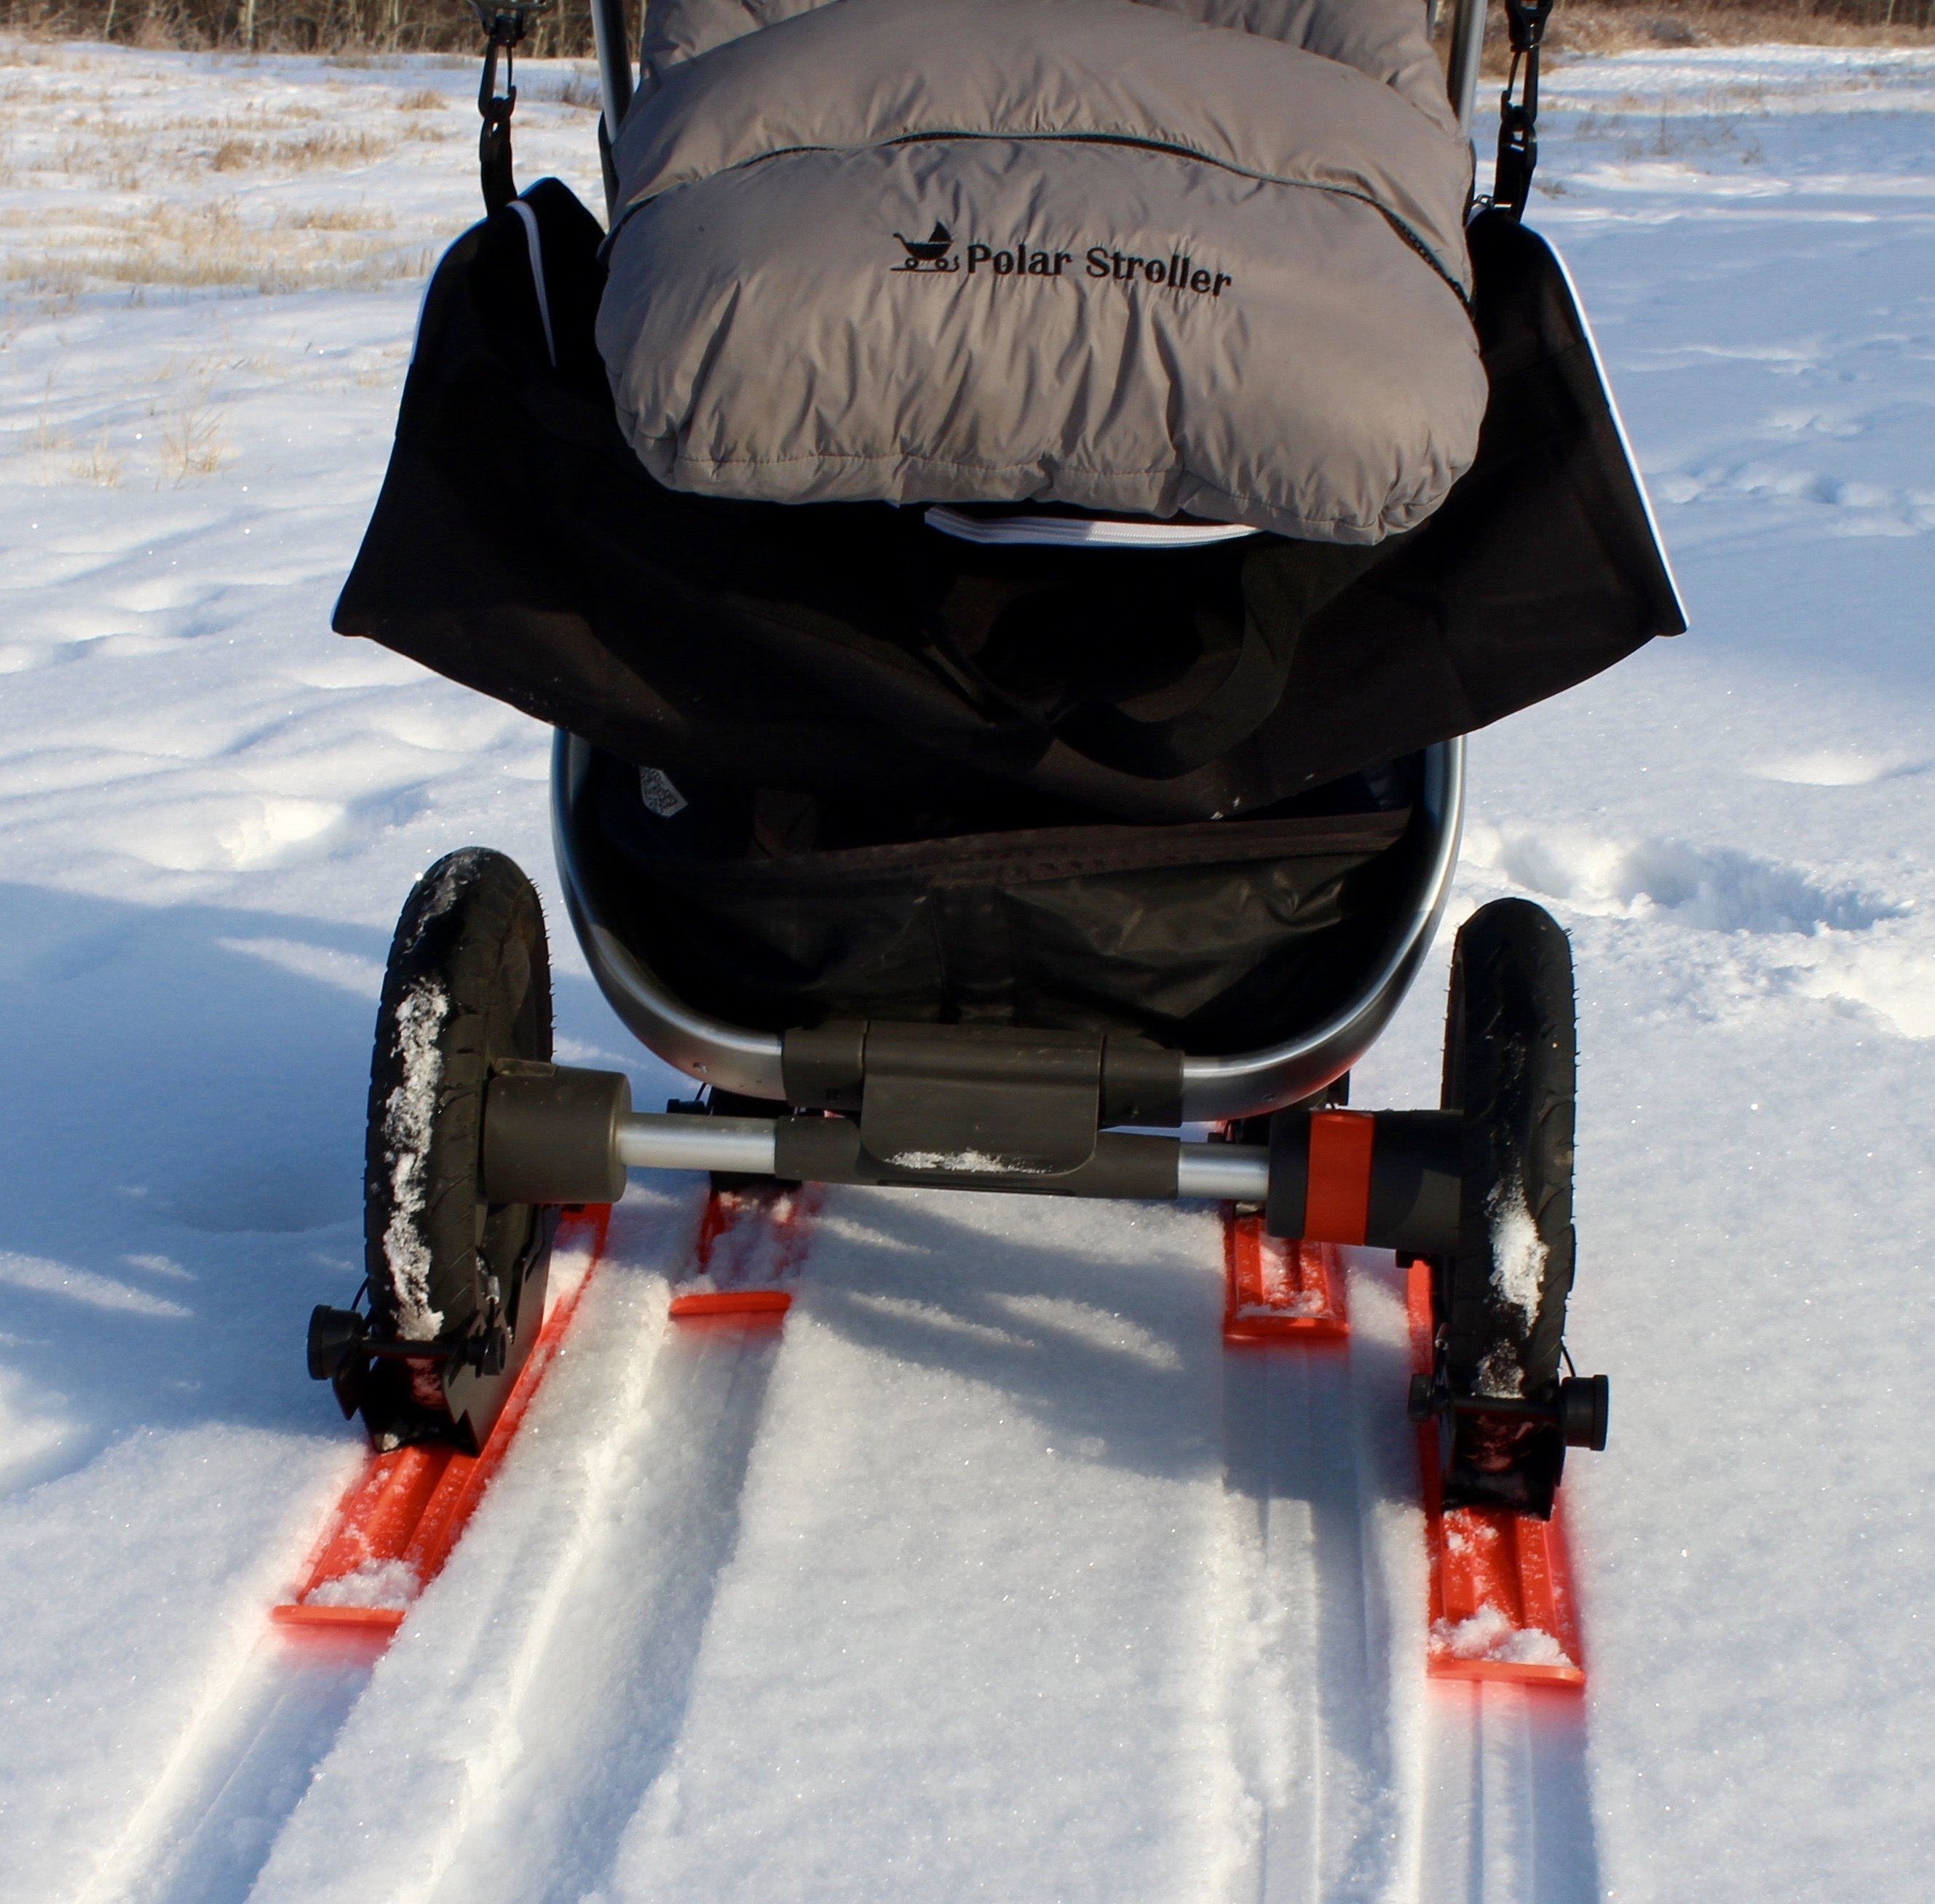 RX4 - 4 Wheel Polar Stroller Ski Set